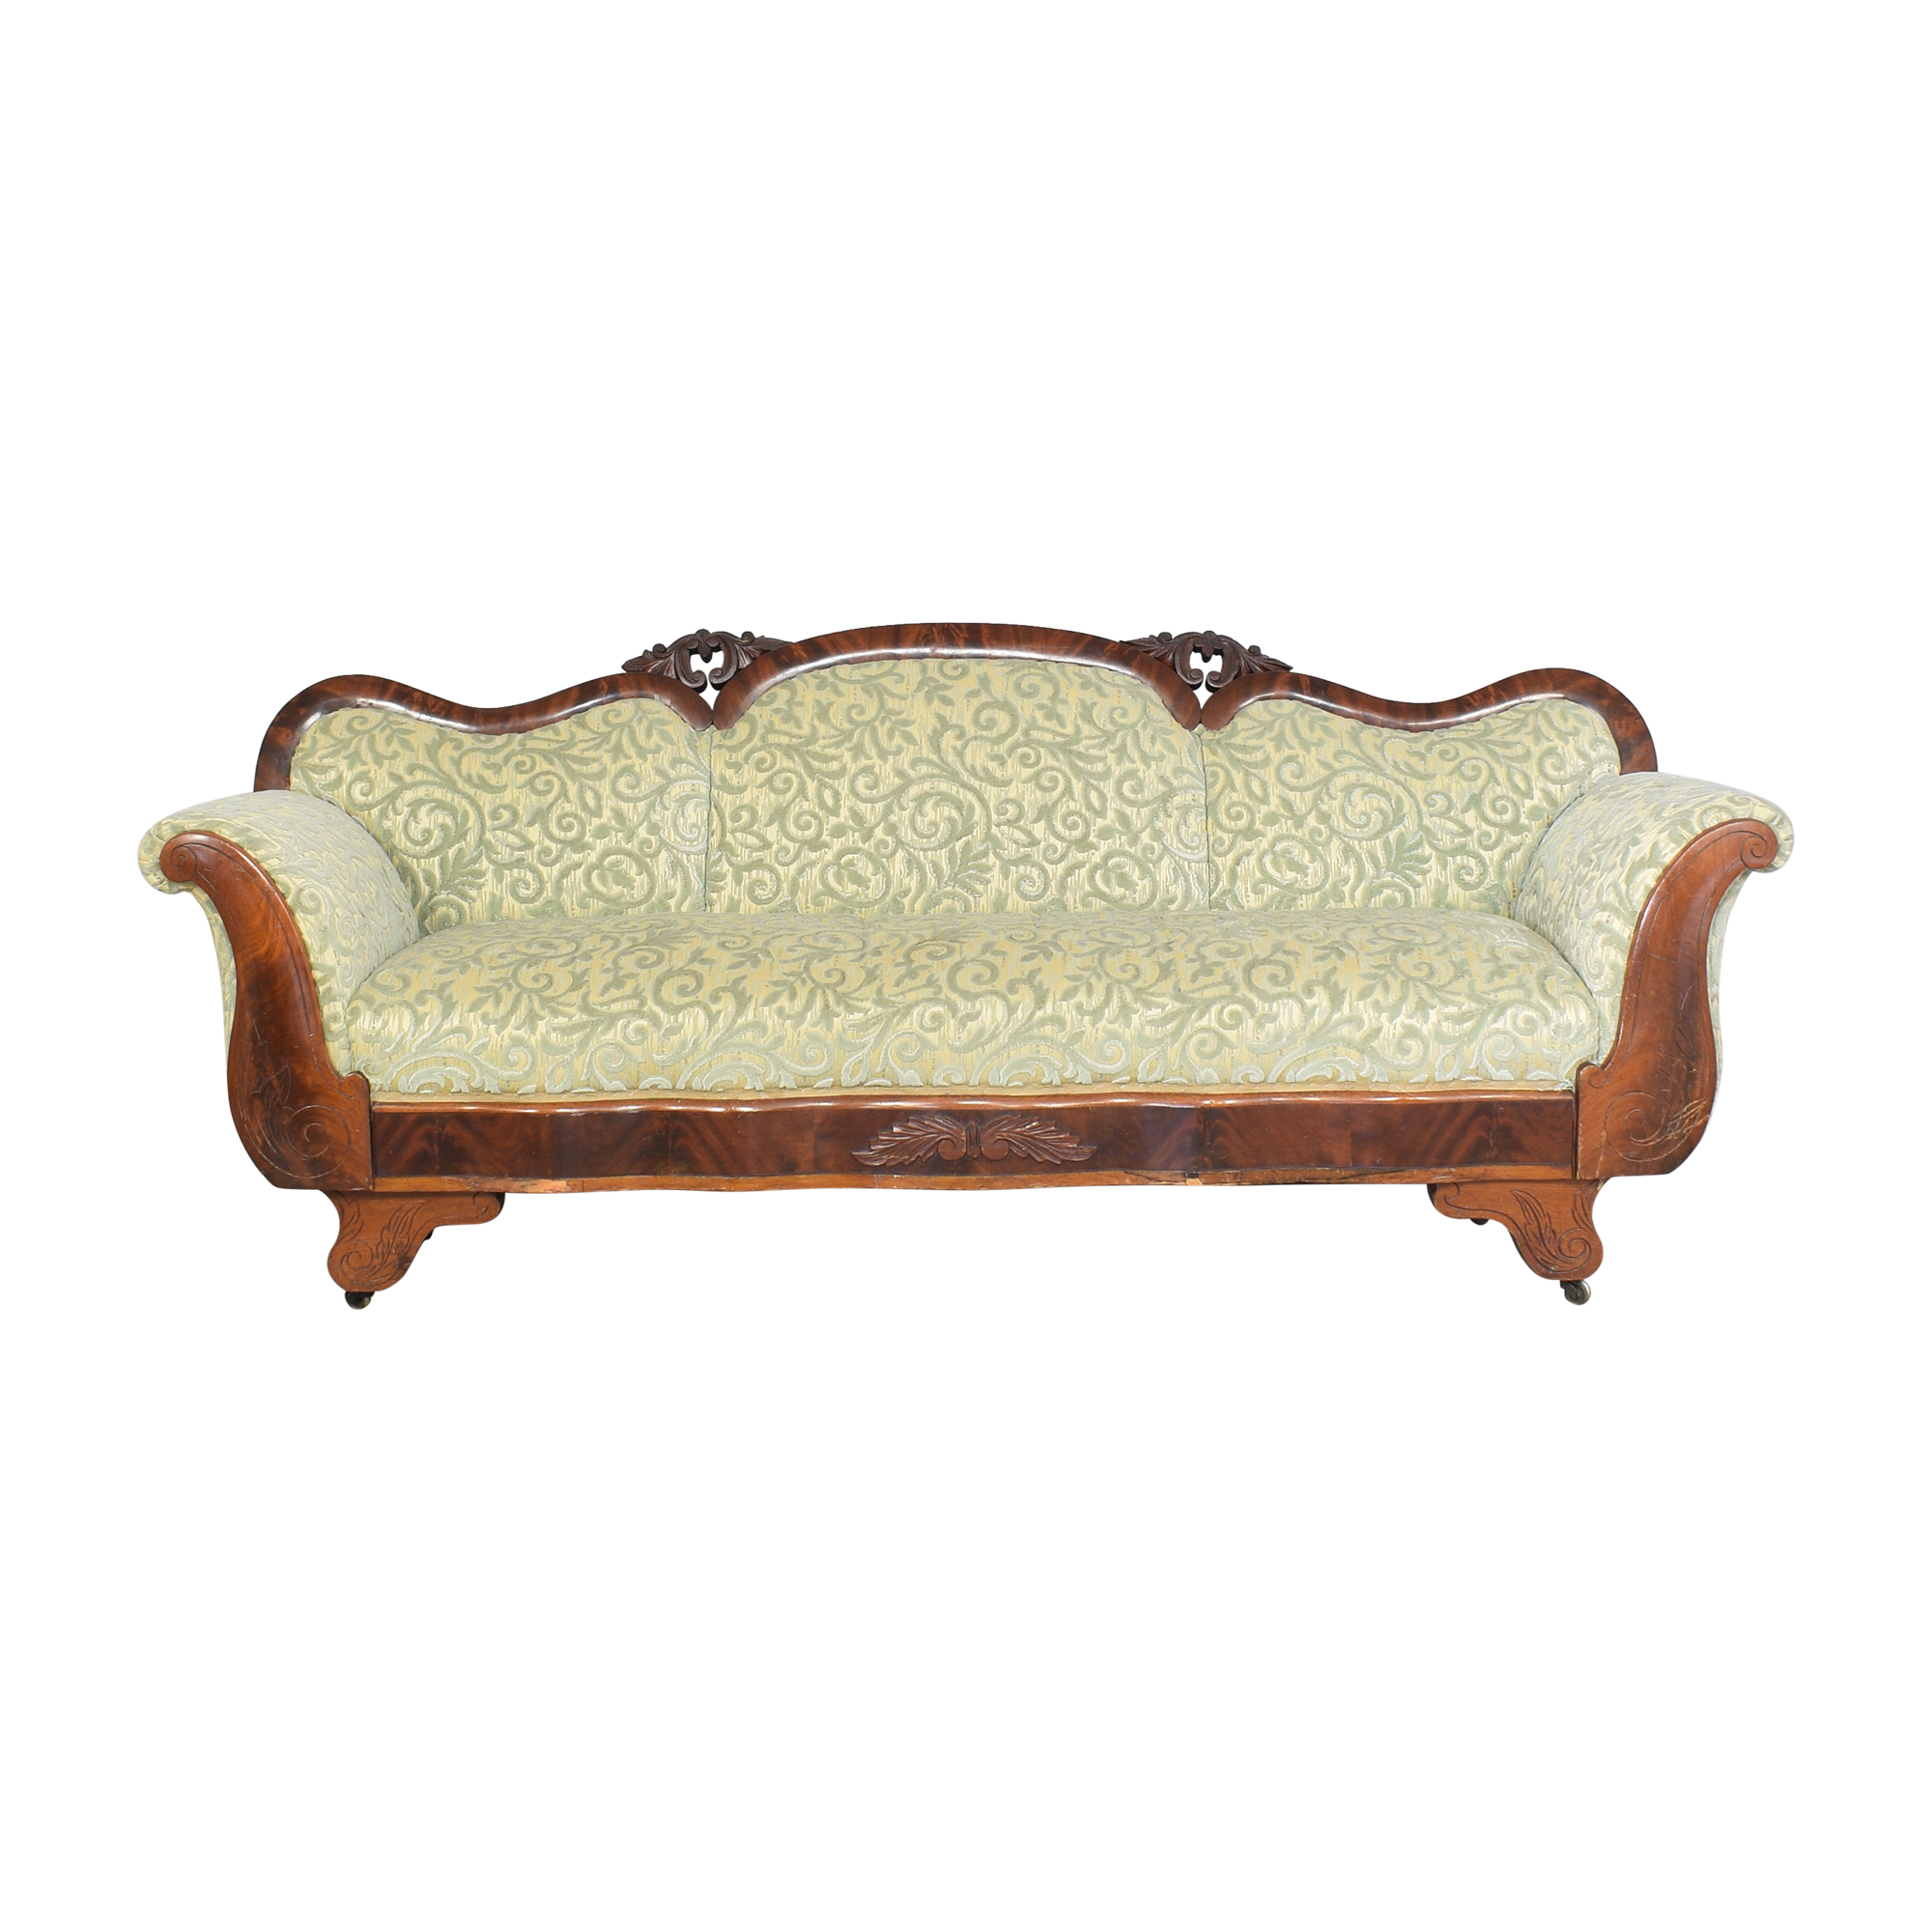 Victorian Style Sofa for sale